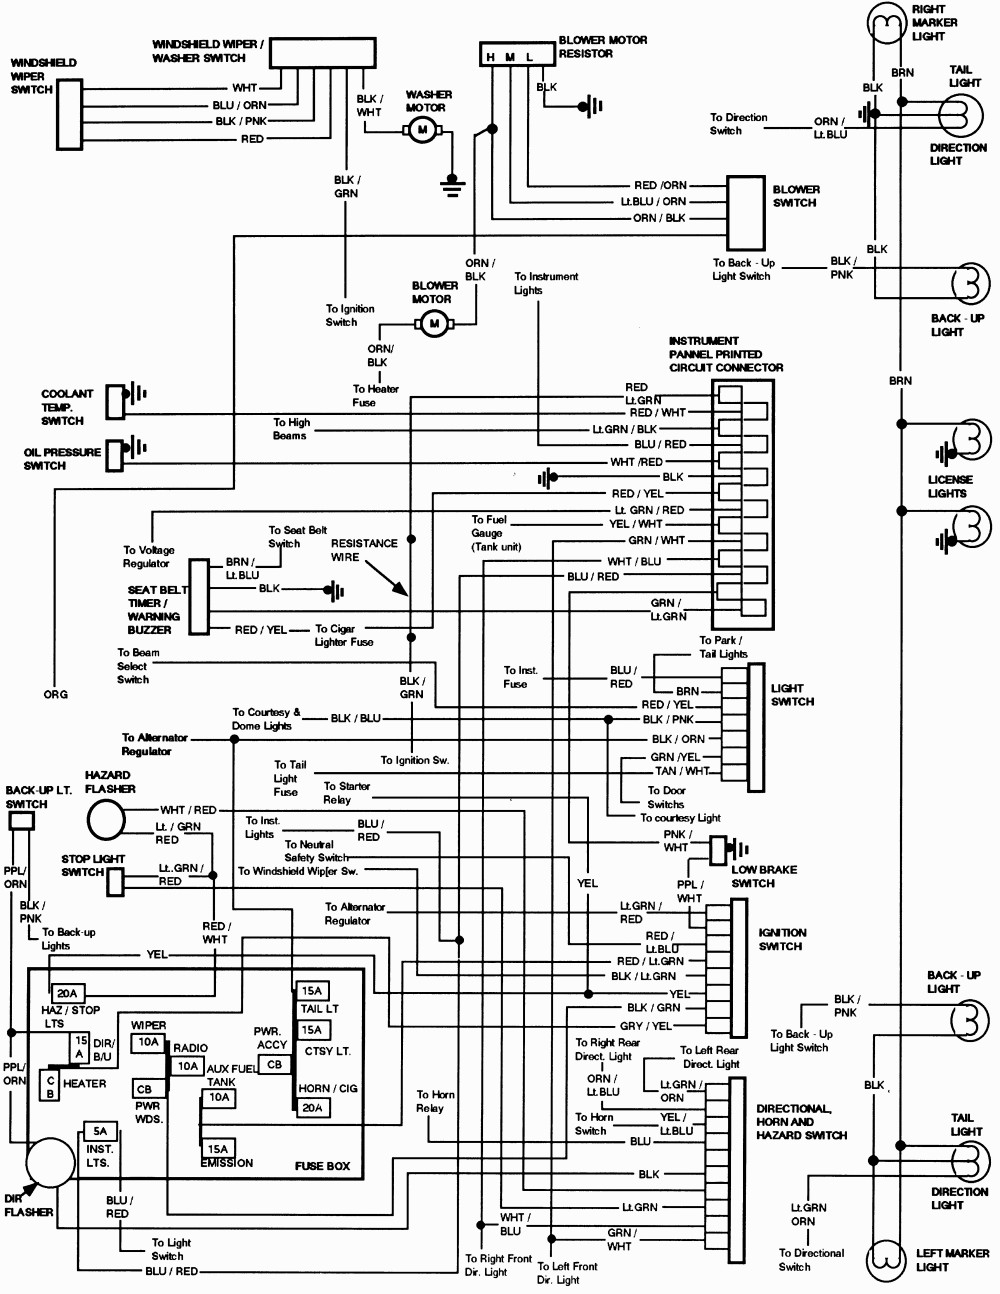 89 Mustang Radio Wiring Diagram | Free Wiring Diagram on